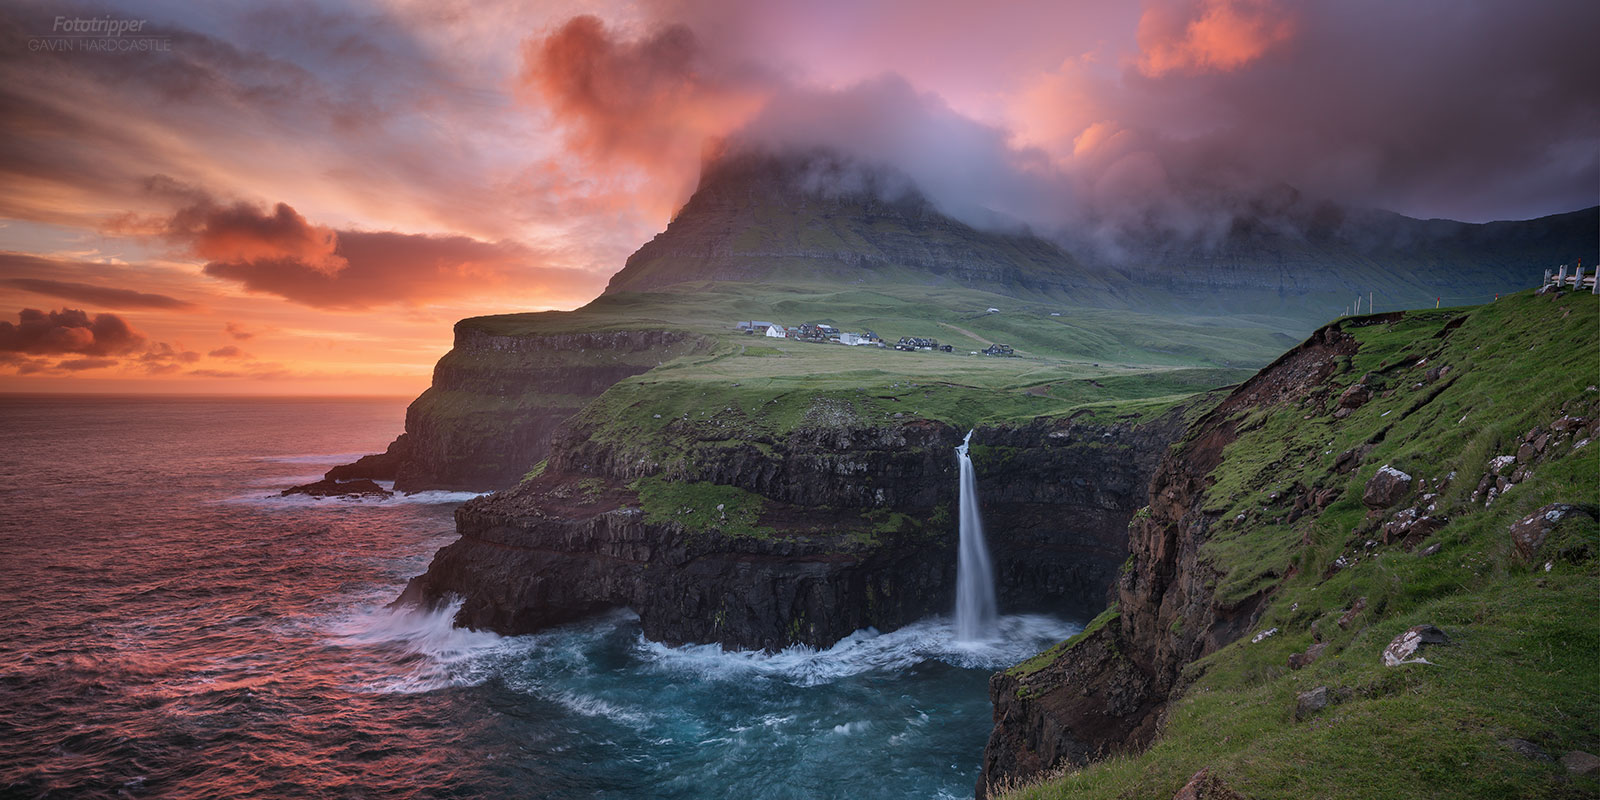 Mullafossar Waterfall - Faroe Islands Photo Tour